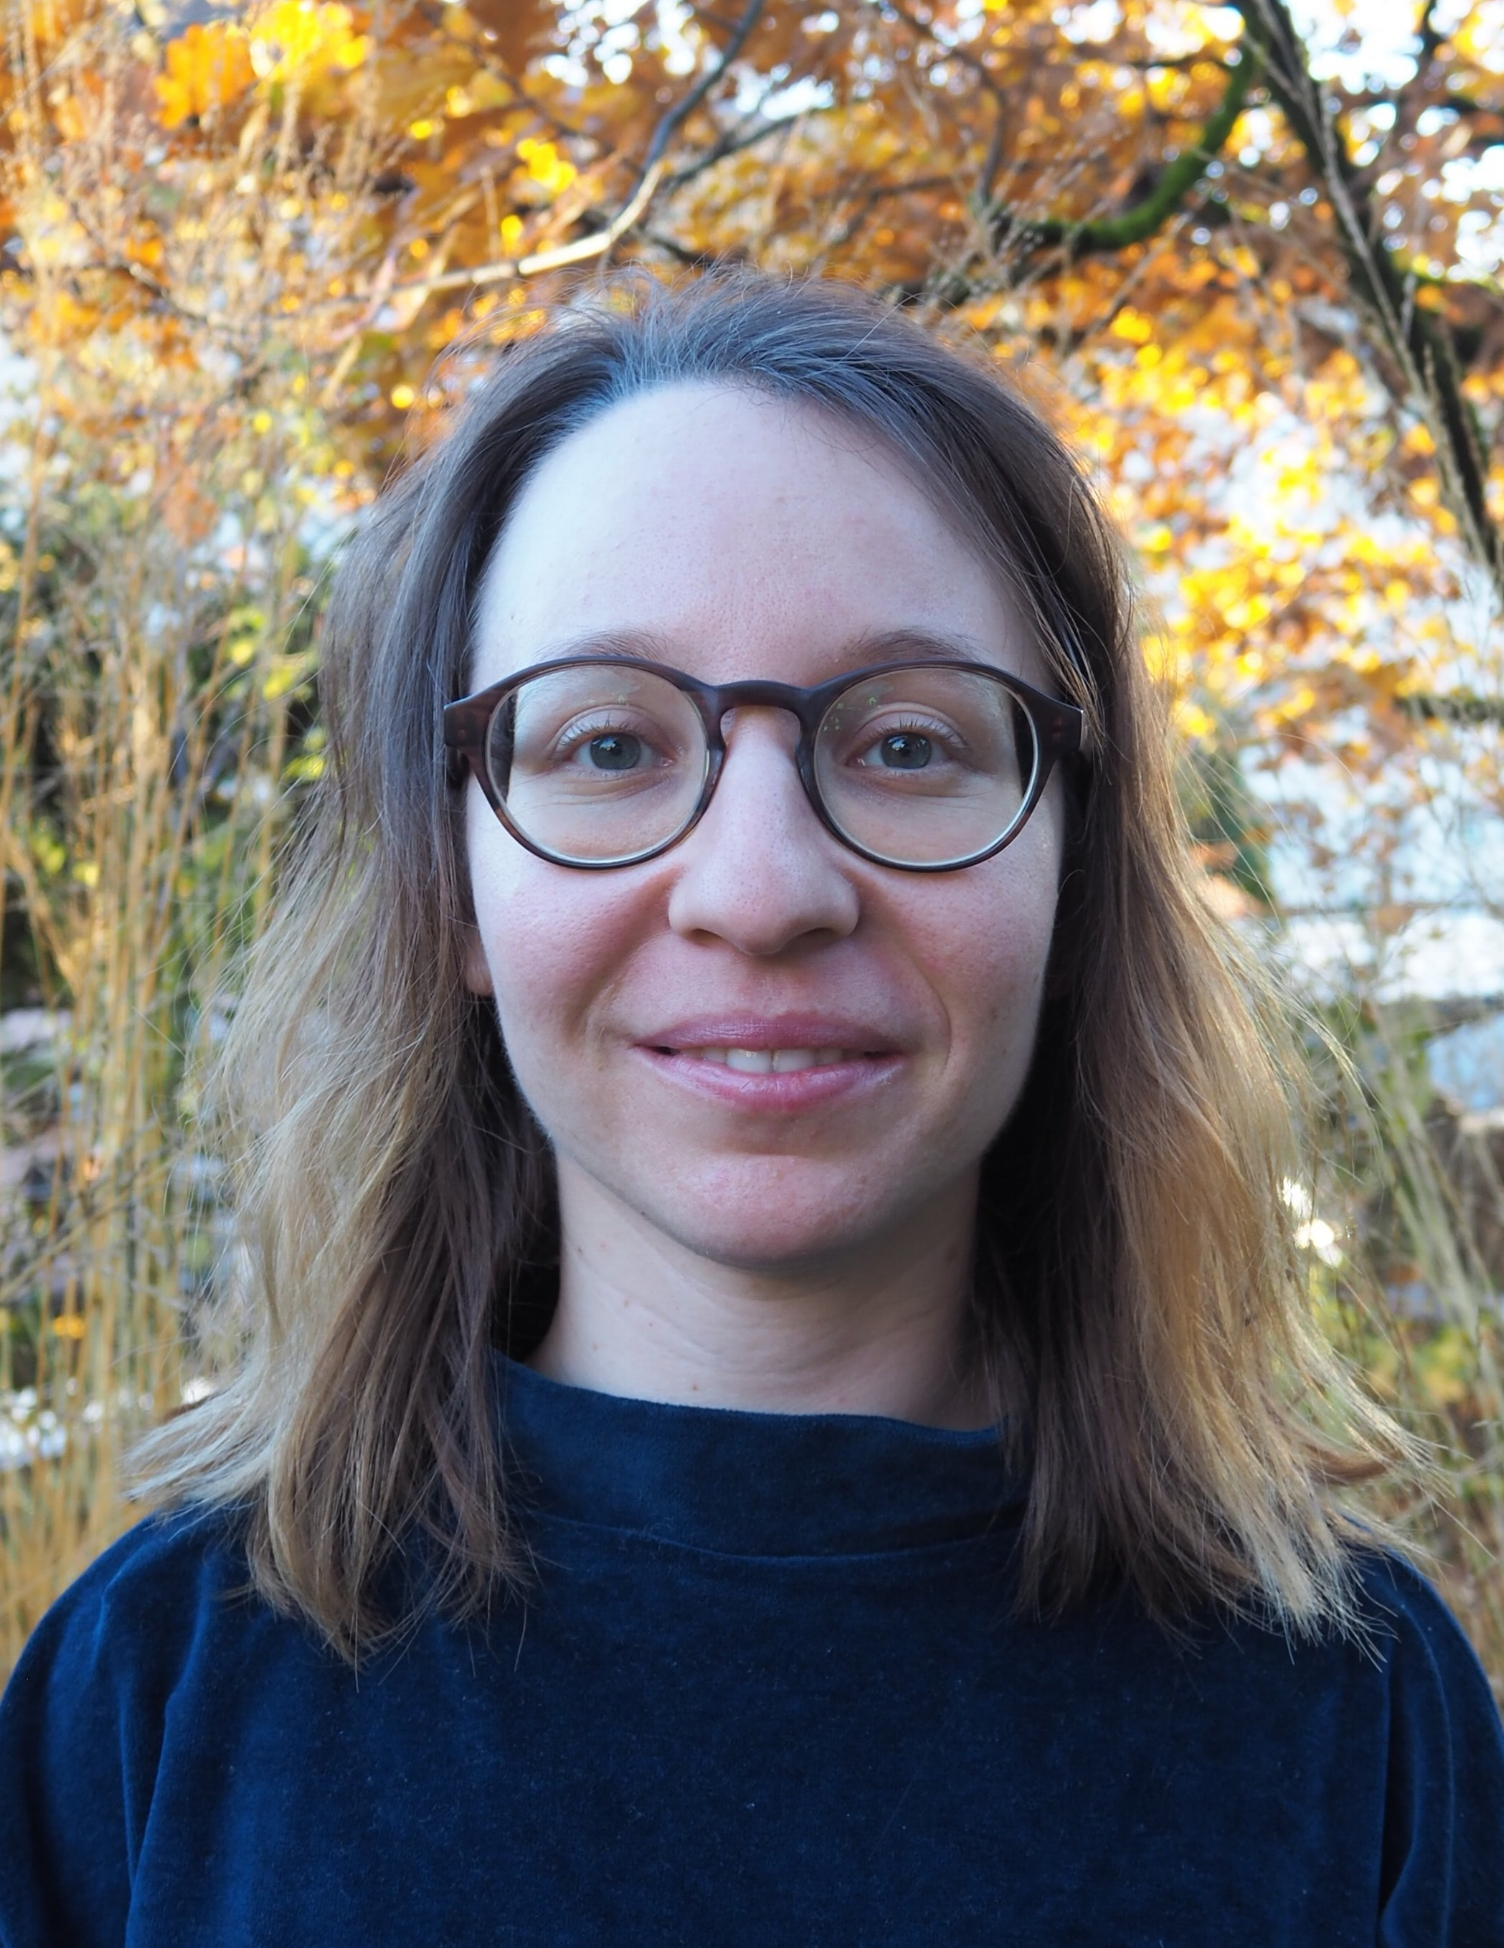 Rebecca Farner, B.A. - Rebecca Farner is completing her MA study in Religion in Contemporary Society at the University of Bern. She works as a research assistant within the project carrying out various scientific tasks.